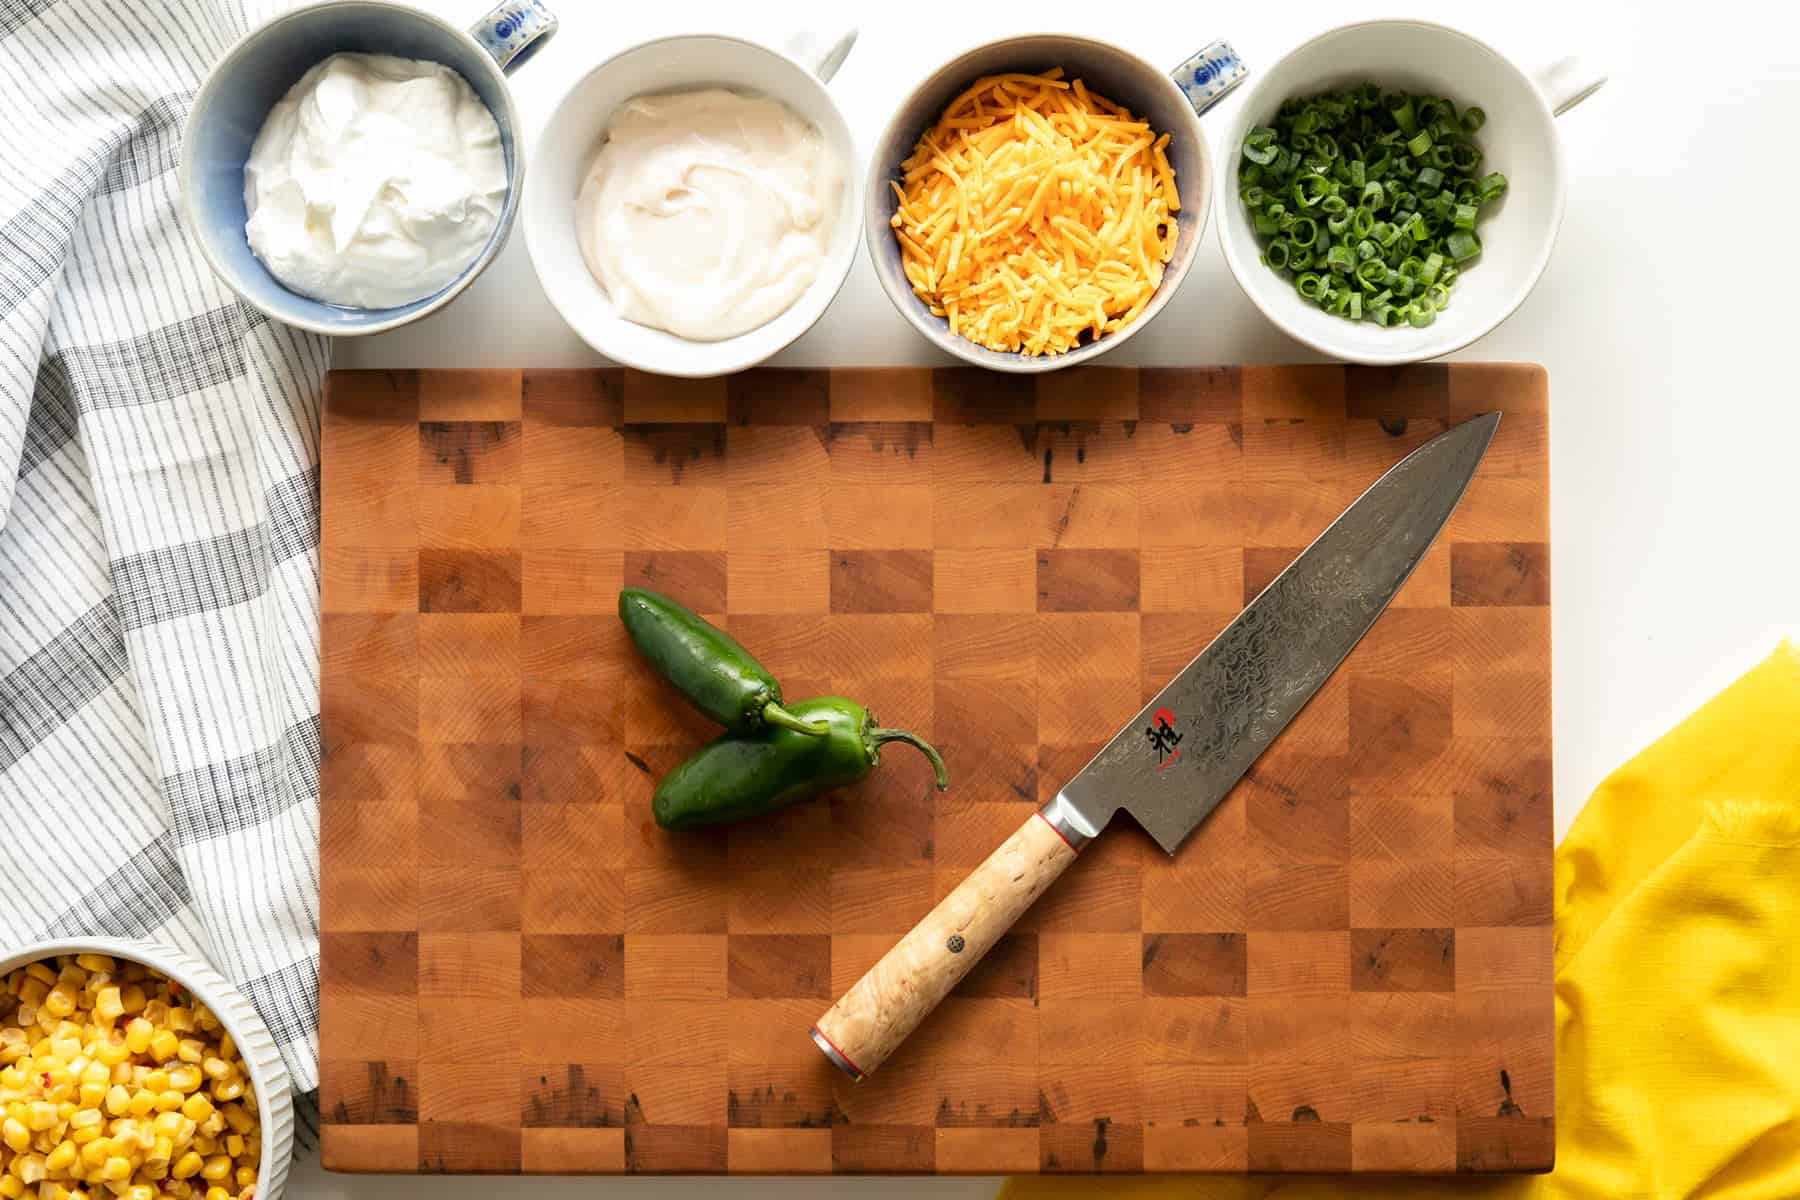 creamy fiesta corn dip ingredients: sour cream, mayonnaise, cheddar, green onion and jalapeño with fiesta corn. All portioned and ready to combine